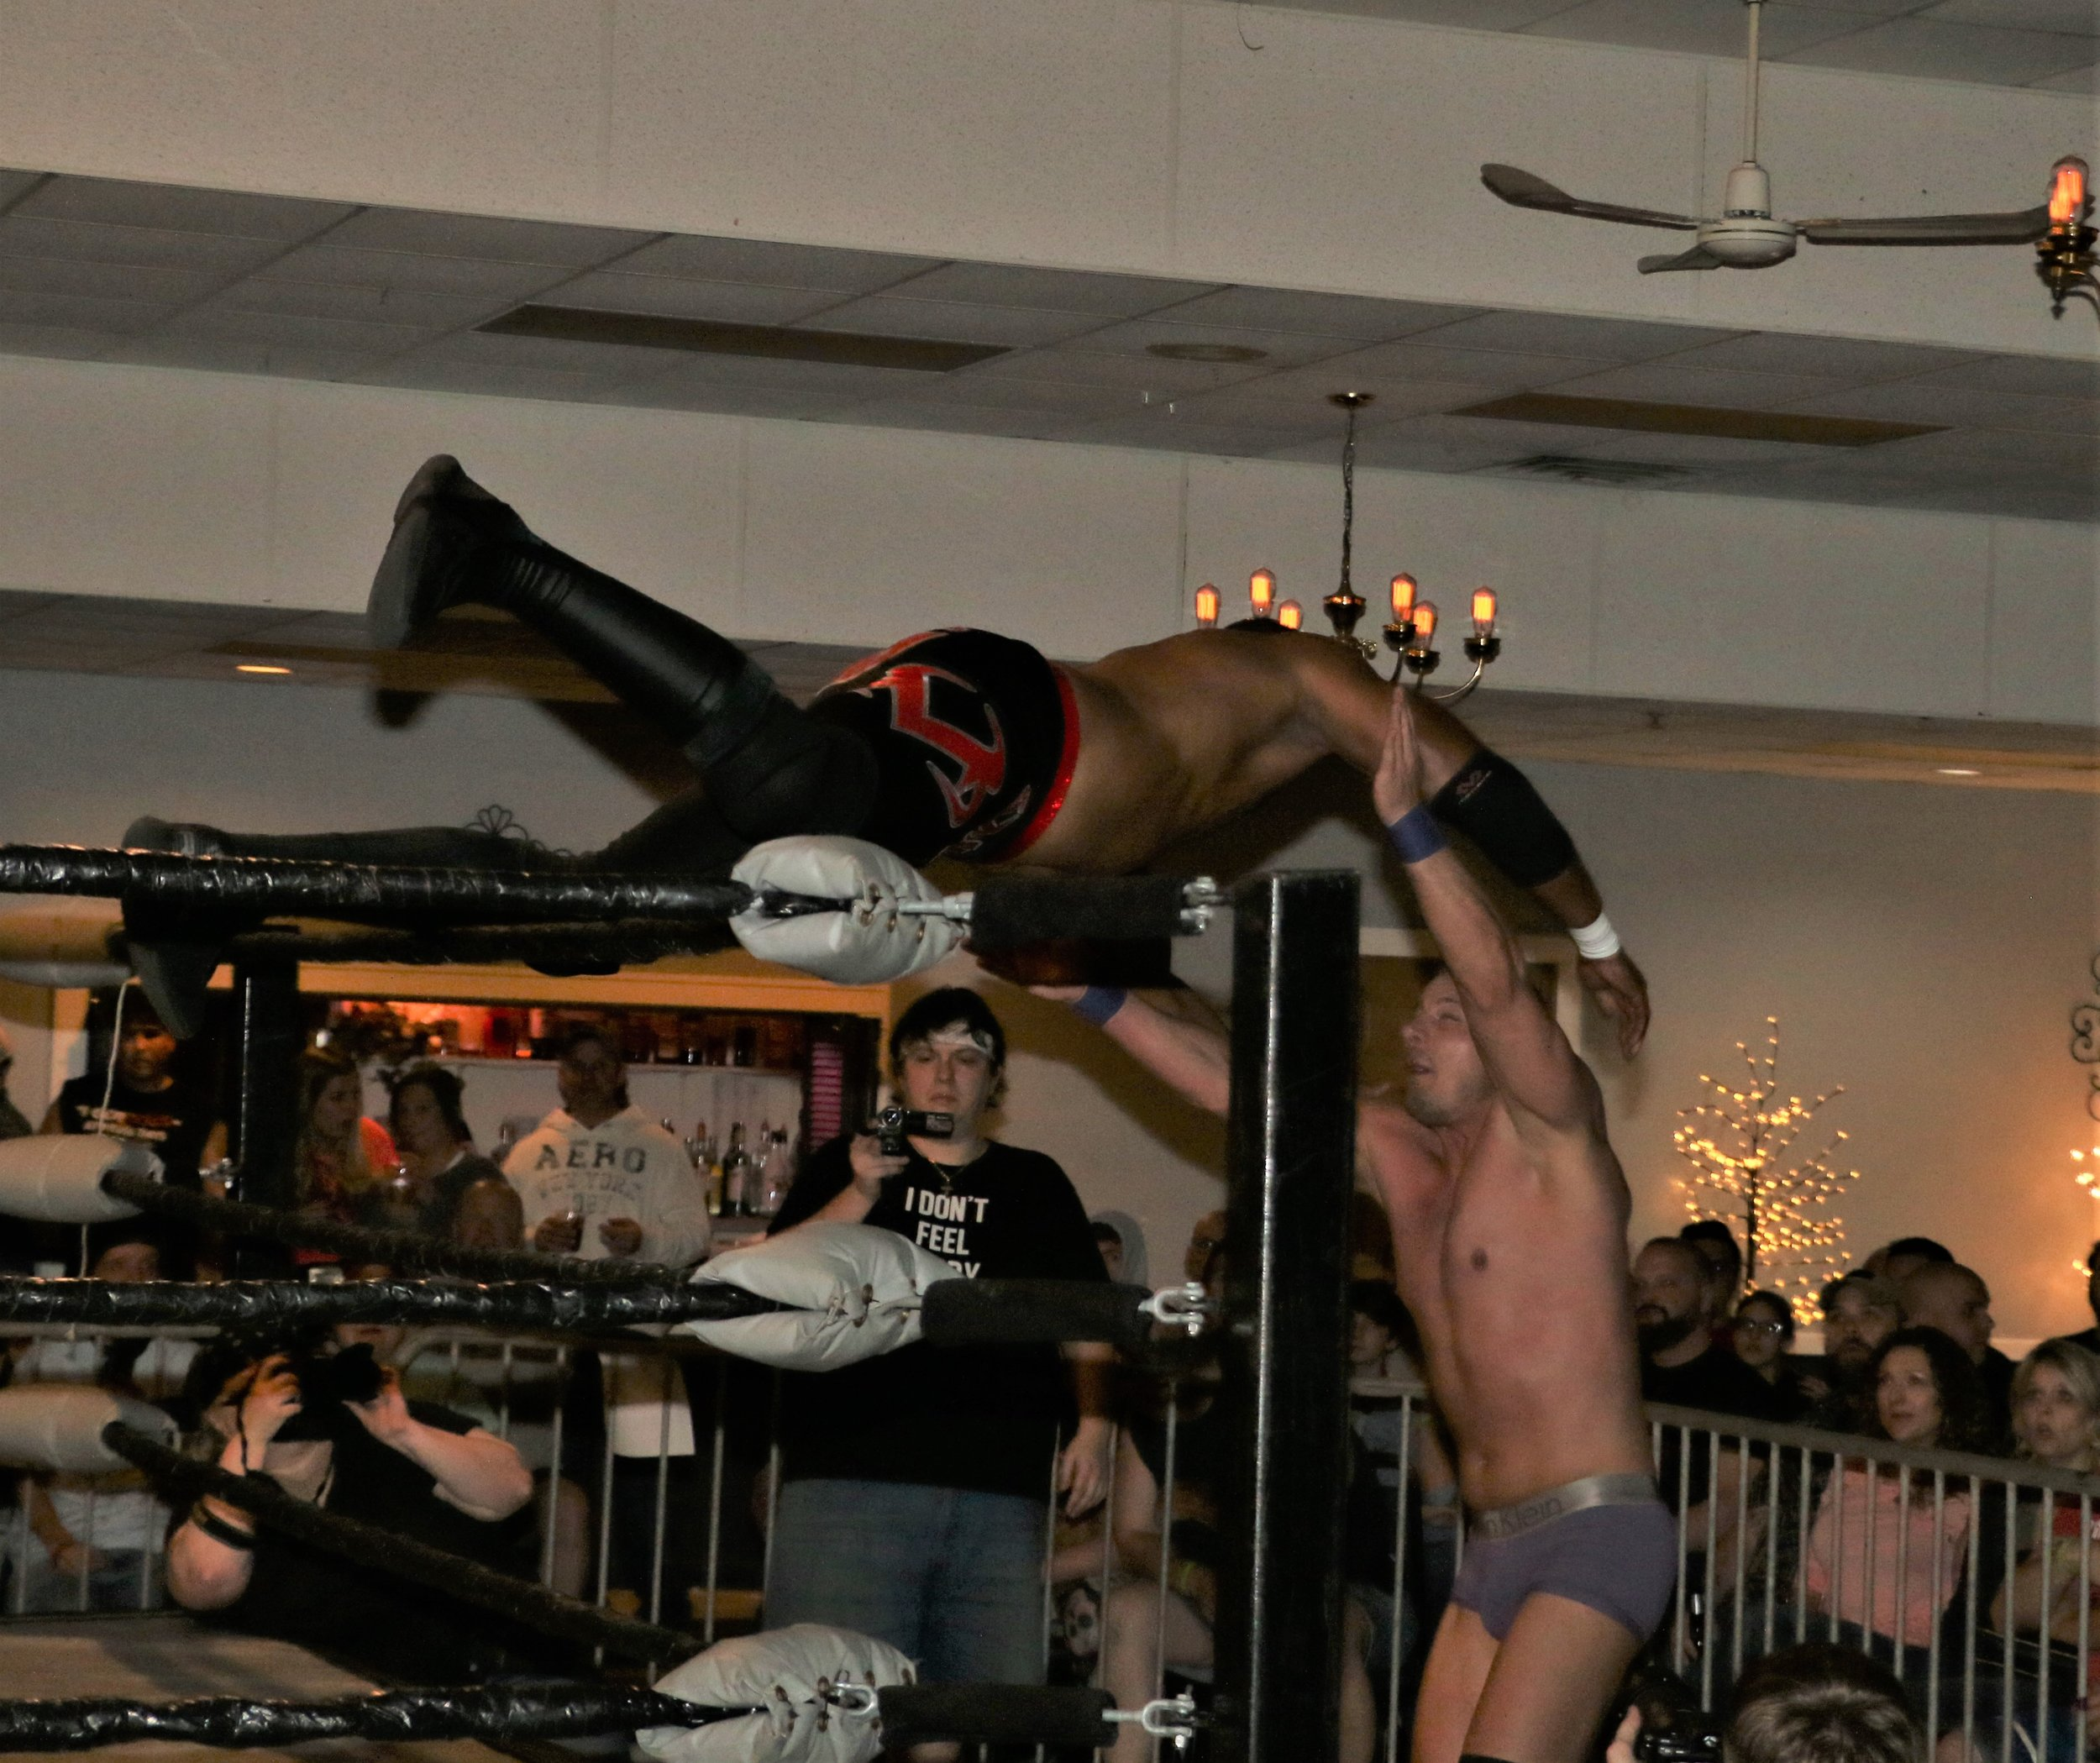 Marshe Rockett dives over the ropes onto Eric Priest.